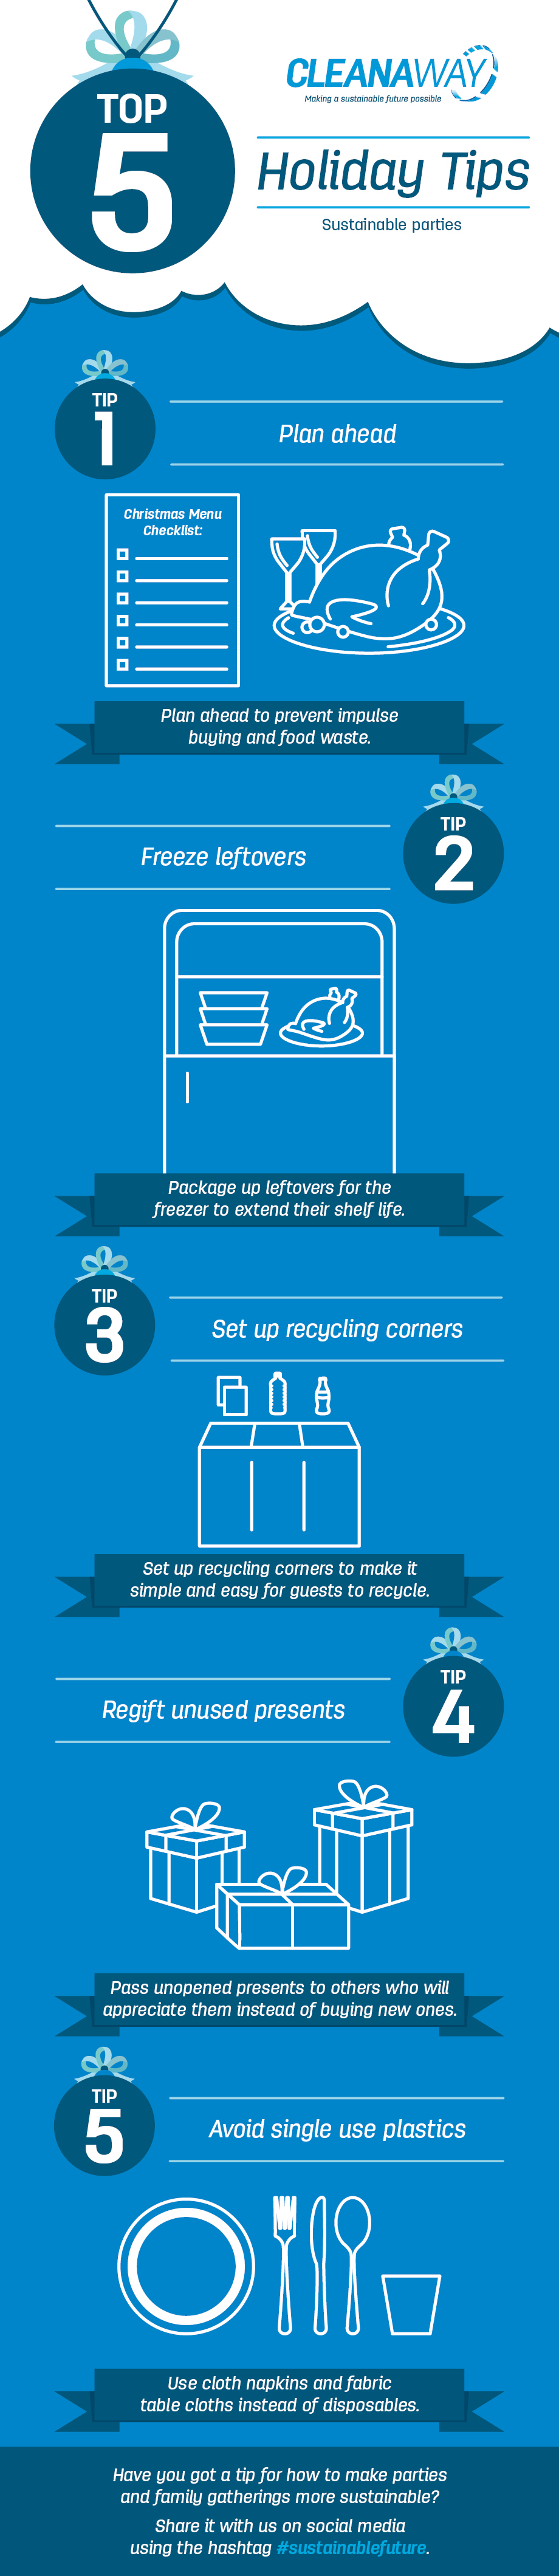 Making gatherings sustainable infographic